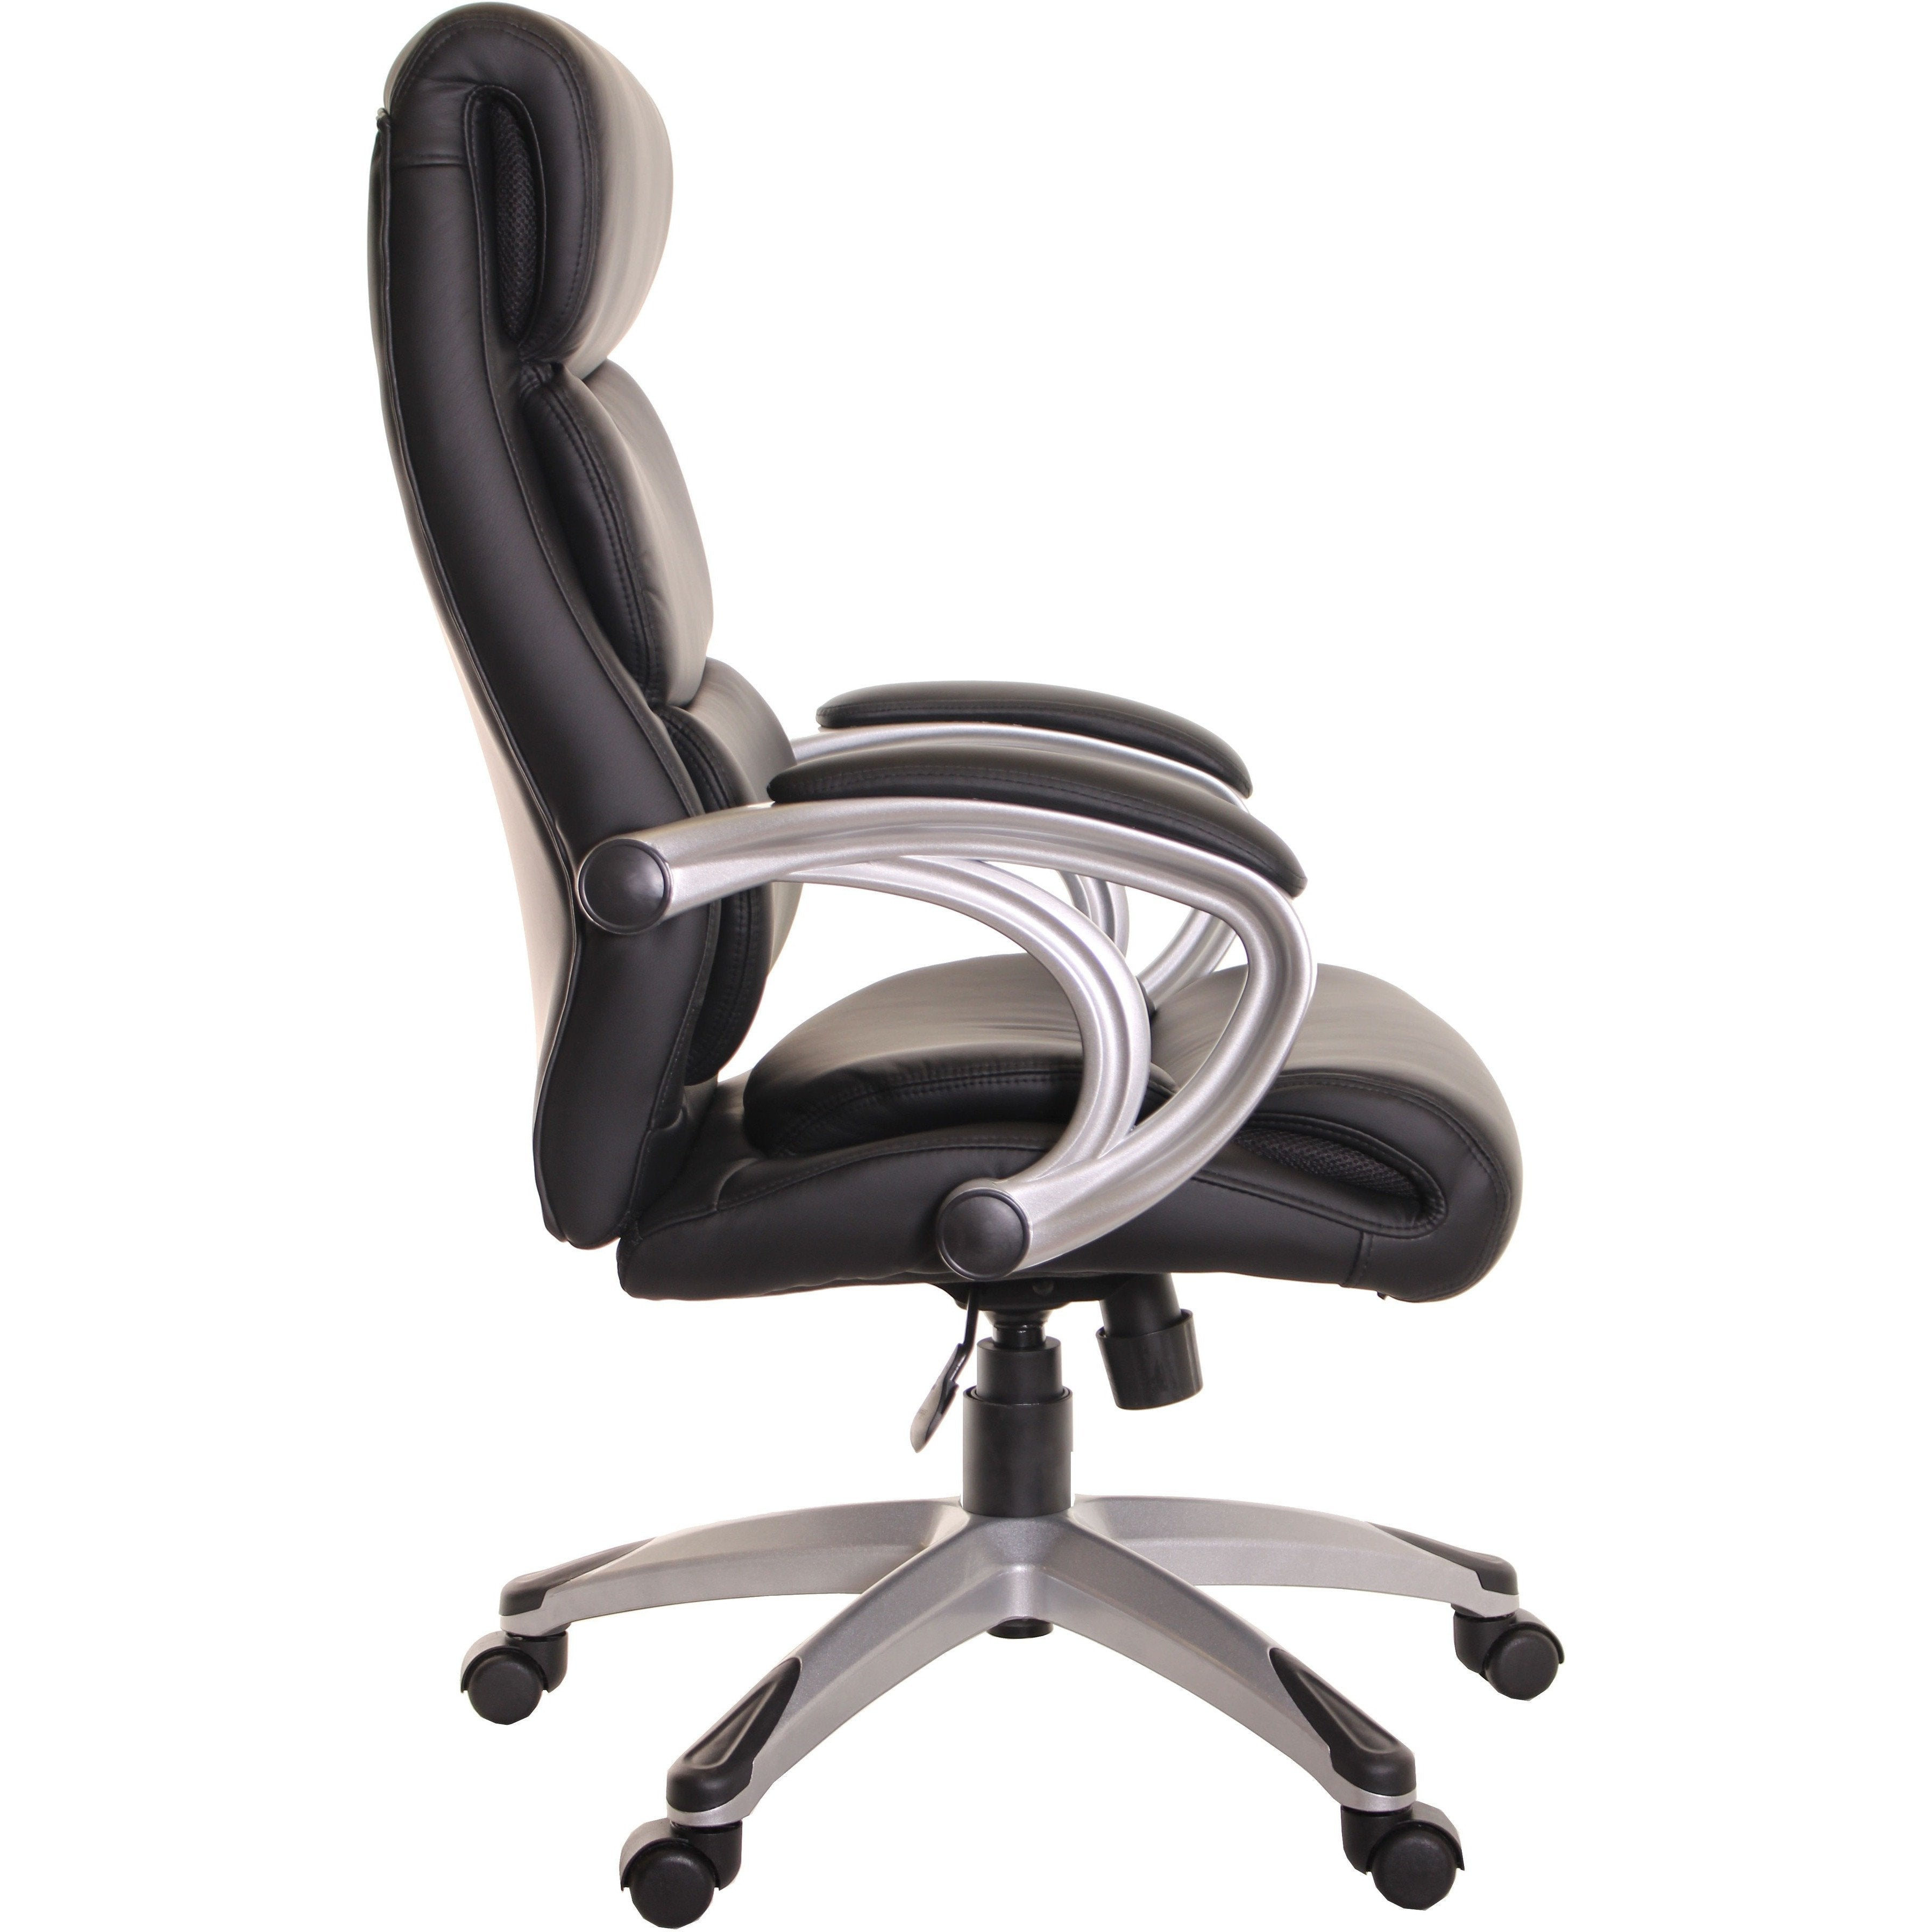 high back executive leather ergonomic chair with armrest black by